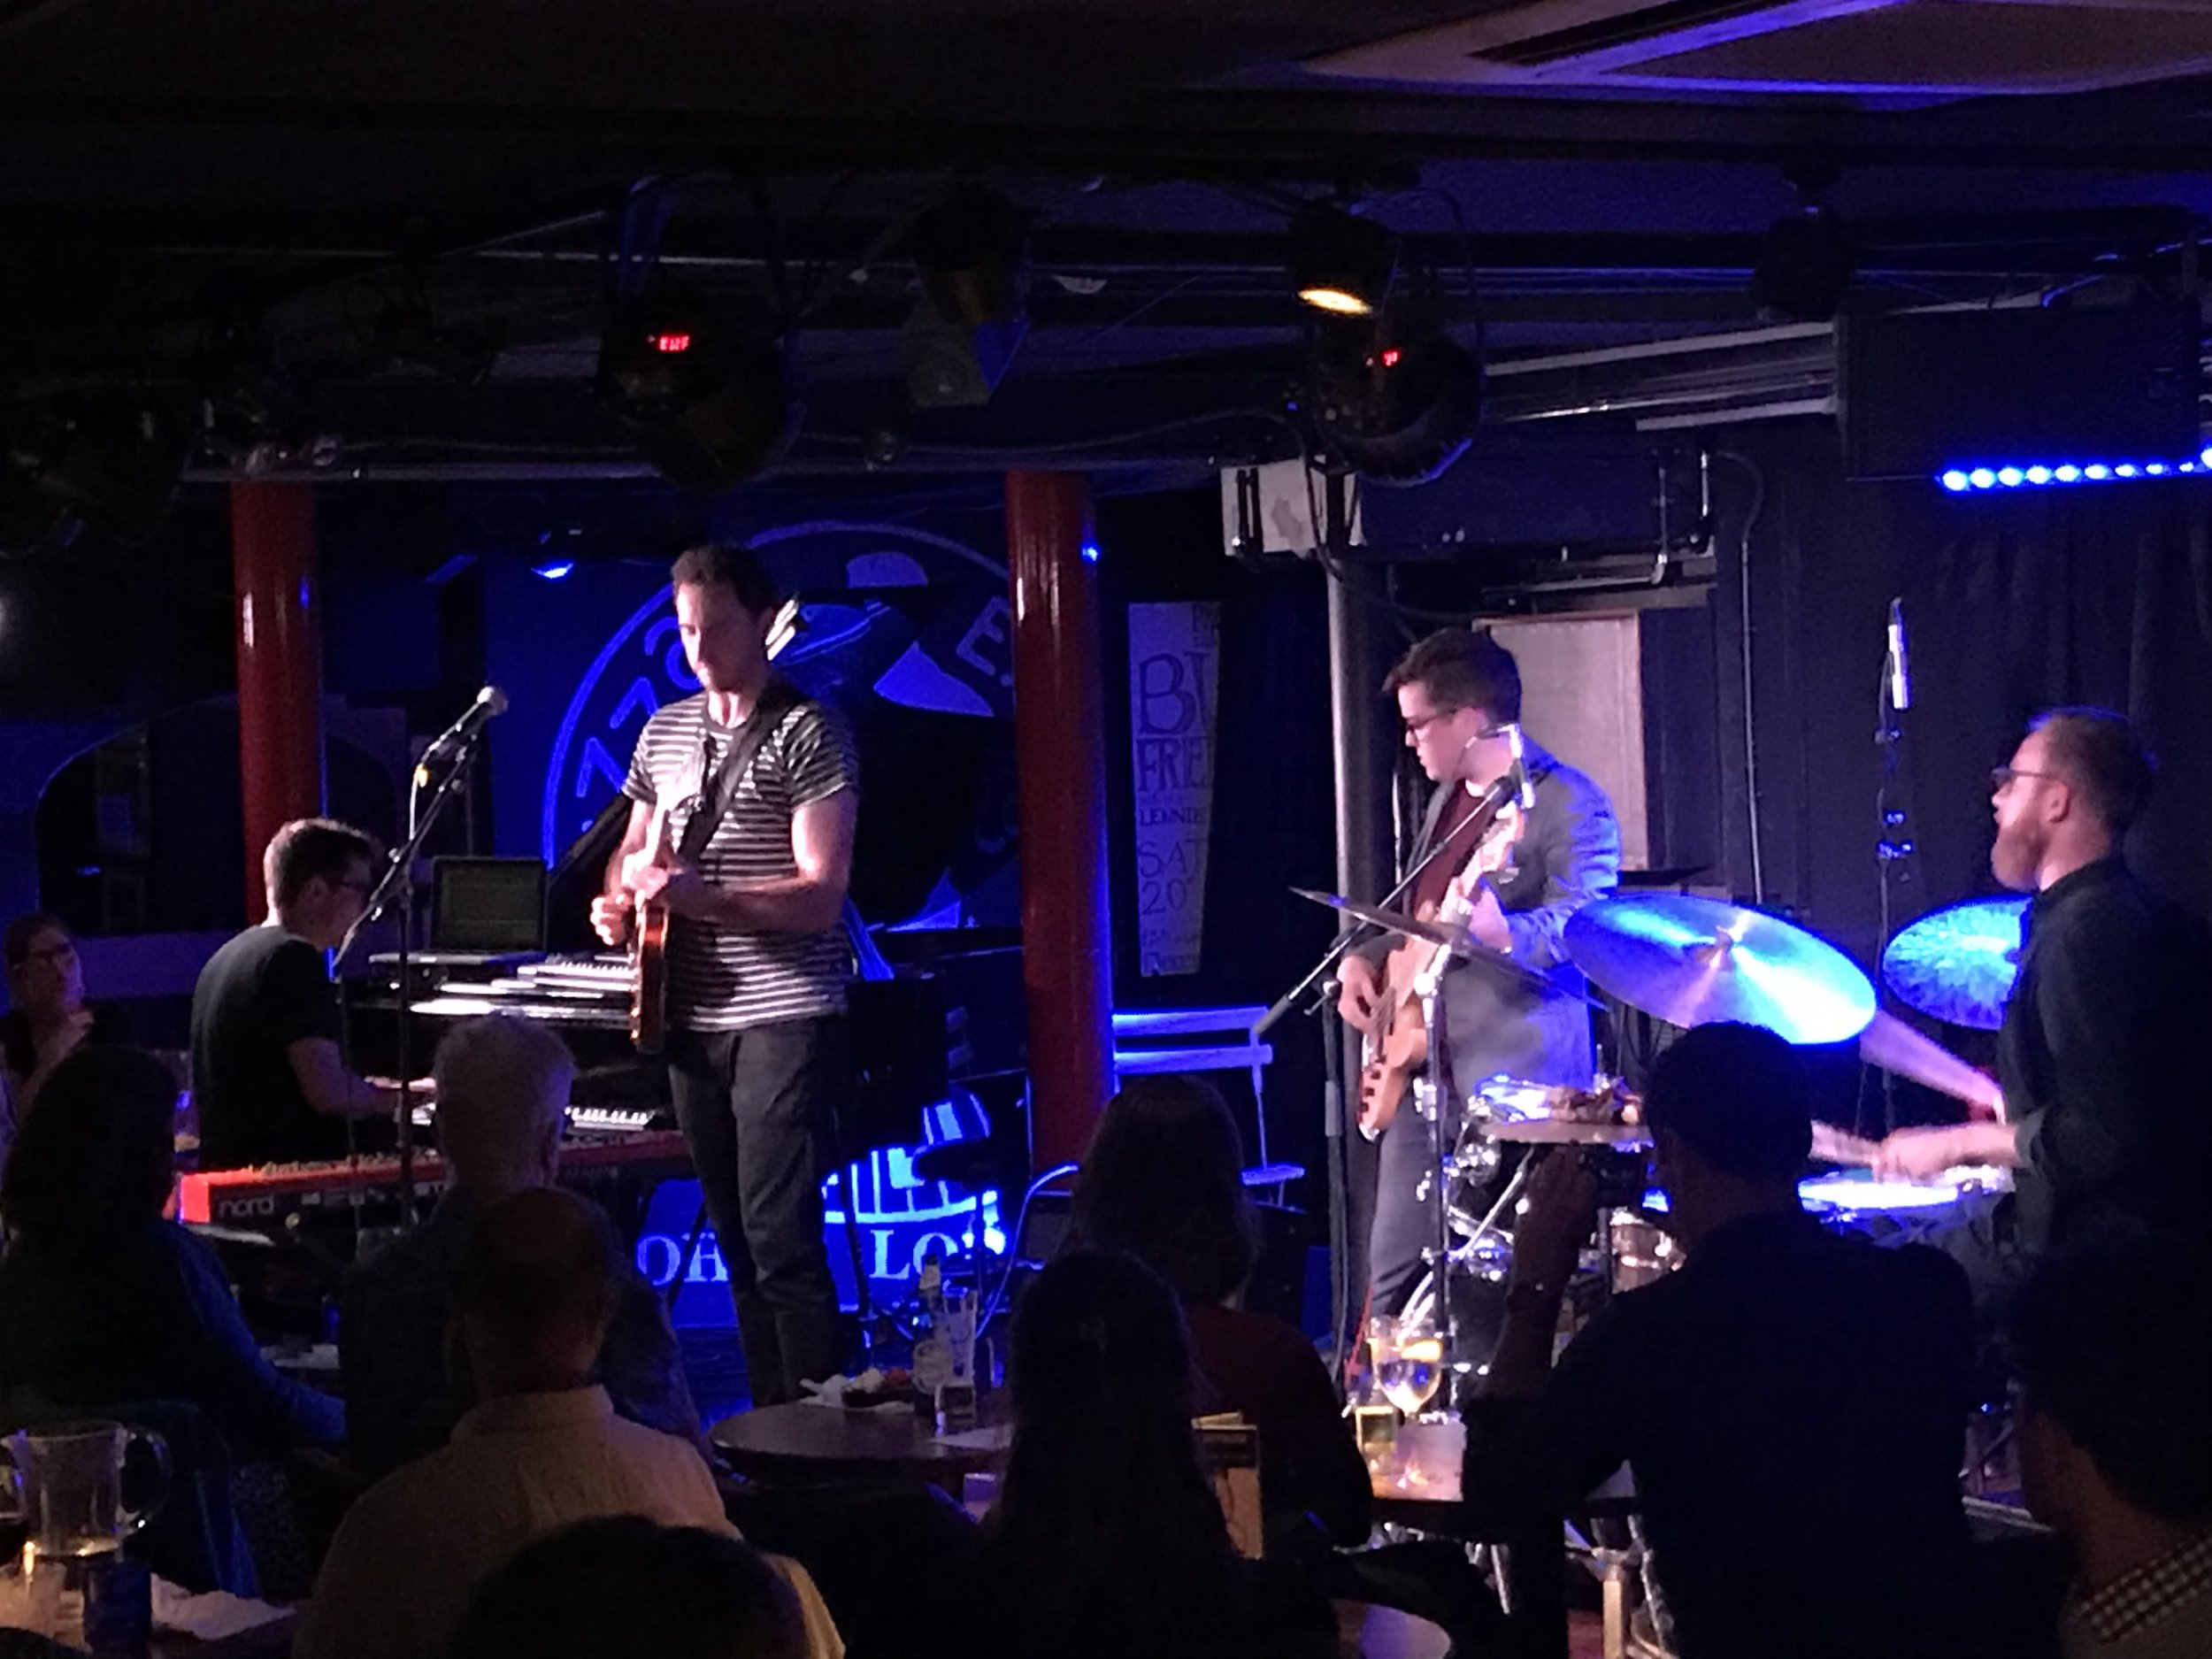 Flying Machines, at Pizza Express, for their album launch show.